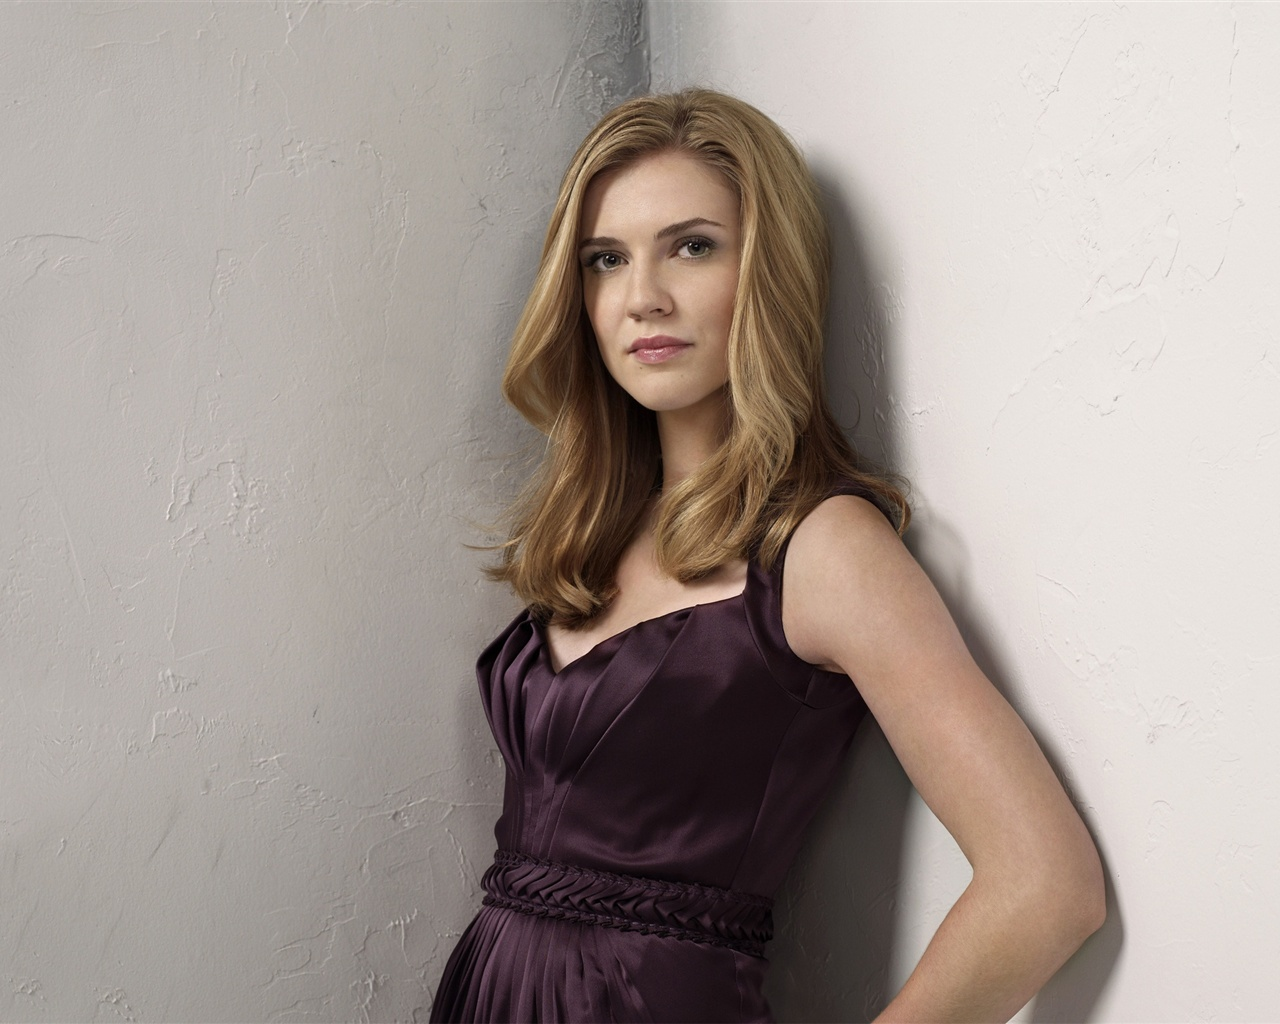 Sara Canning 01 wallpaper - 1280x1024